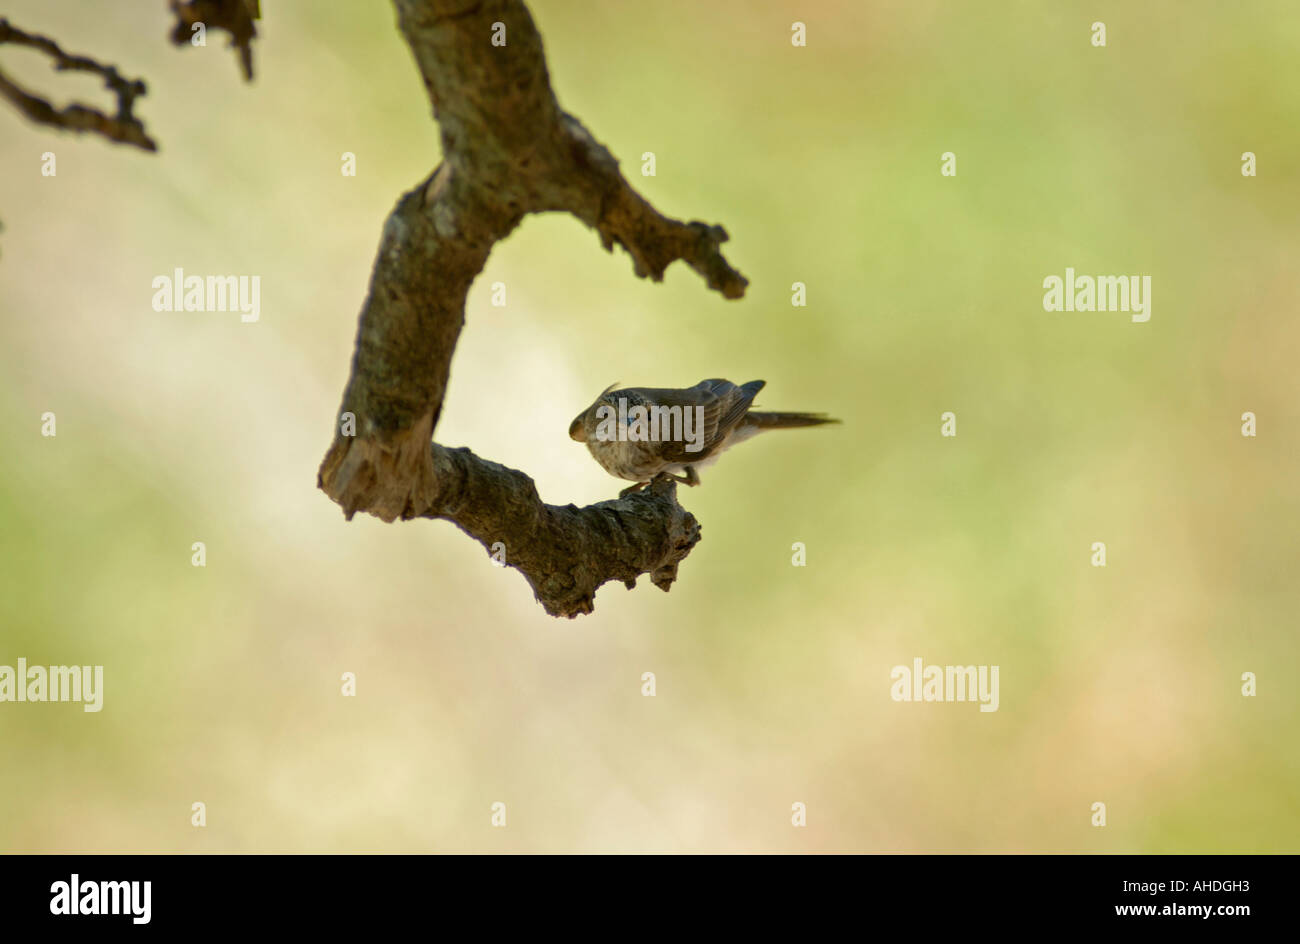 Passerine resting on branch in shade - Stock Image